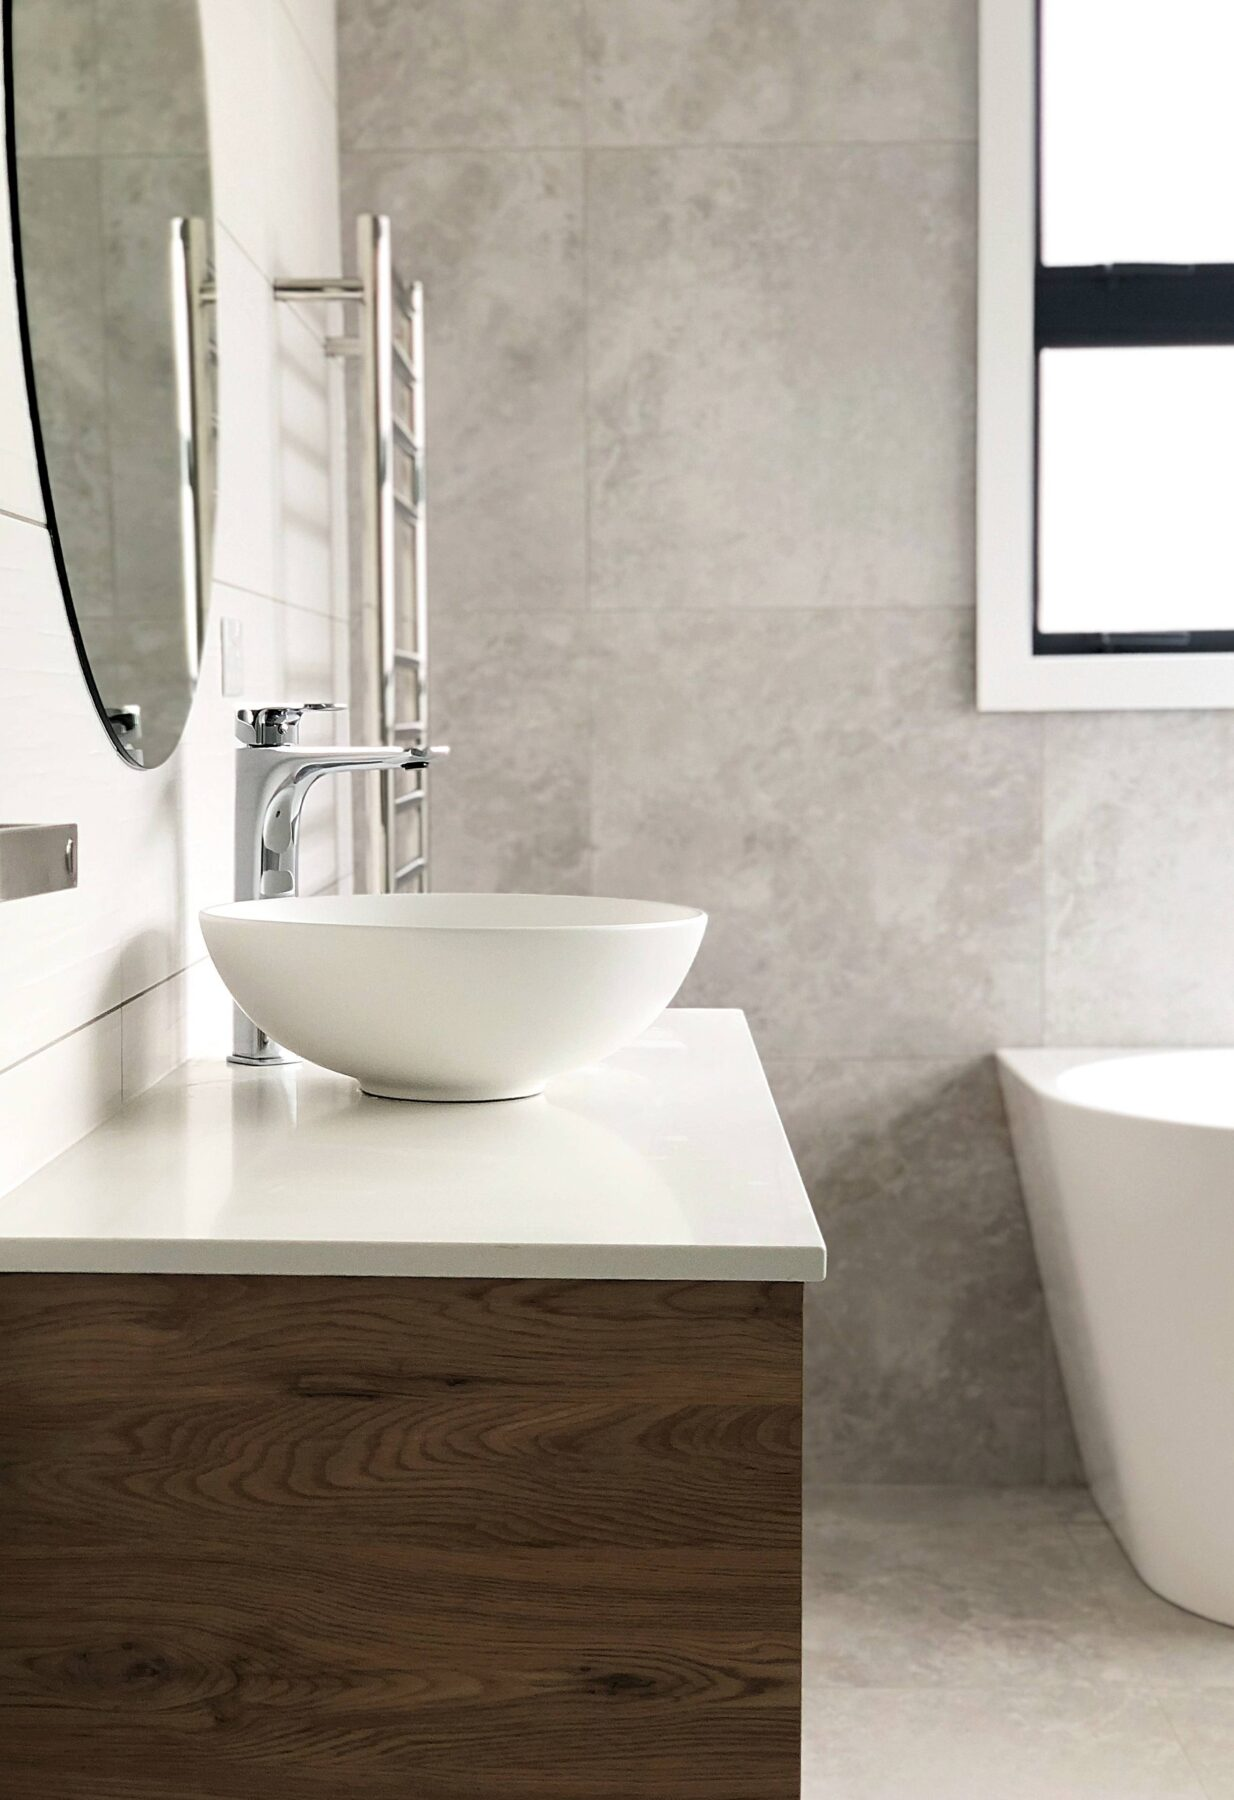 modern clean bathroom vanity design with grey concrete texture wall tiles and round surface mount basin